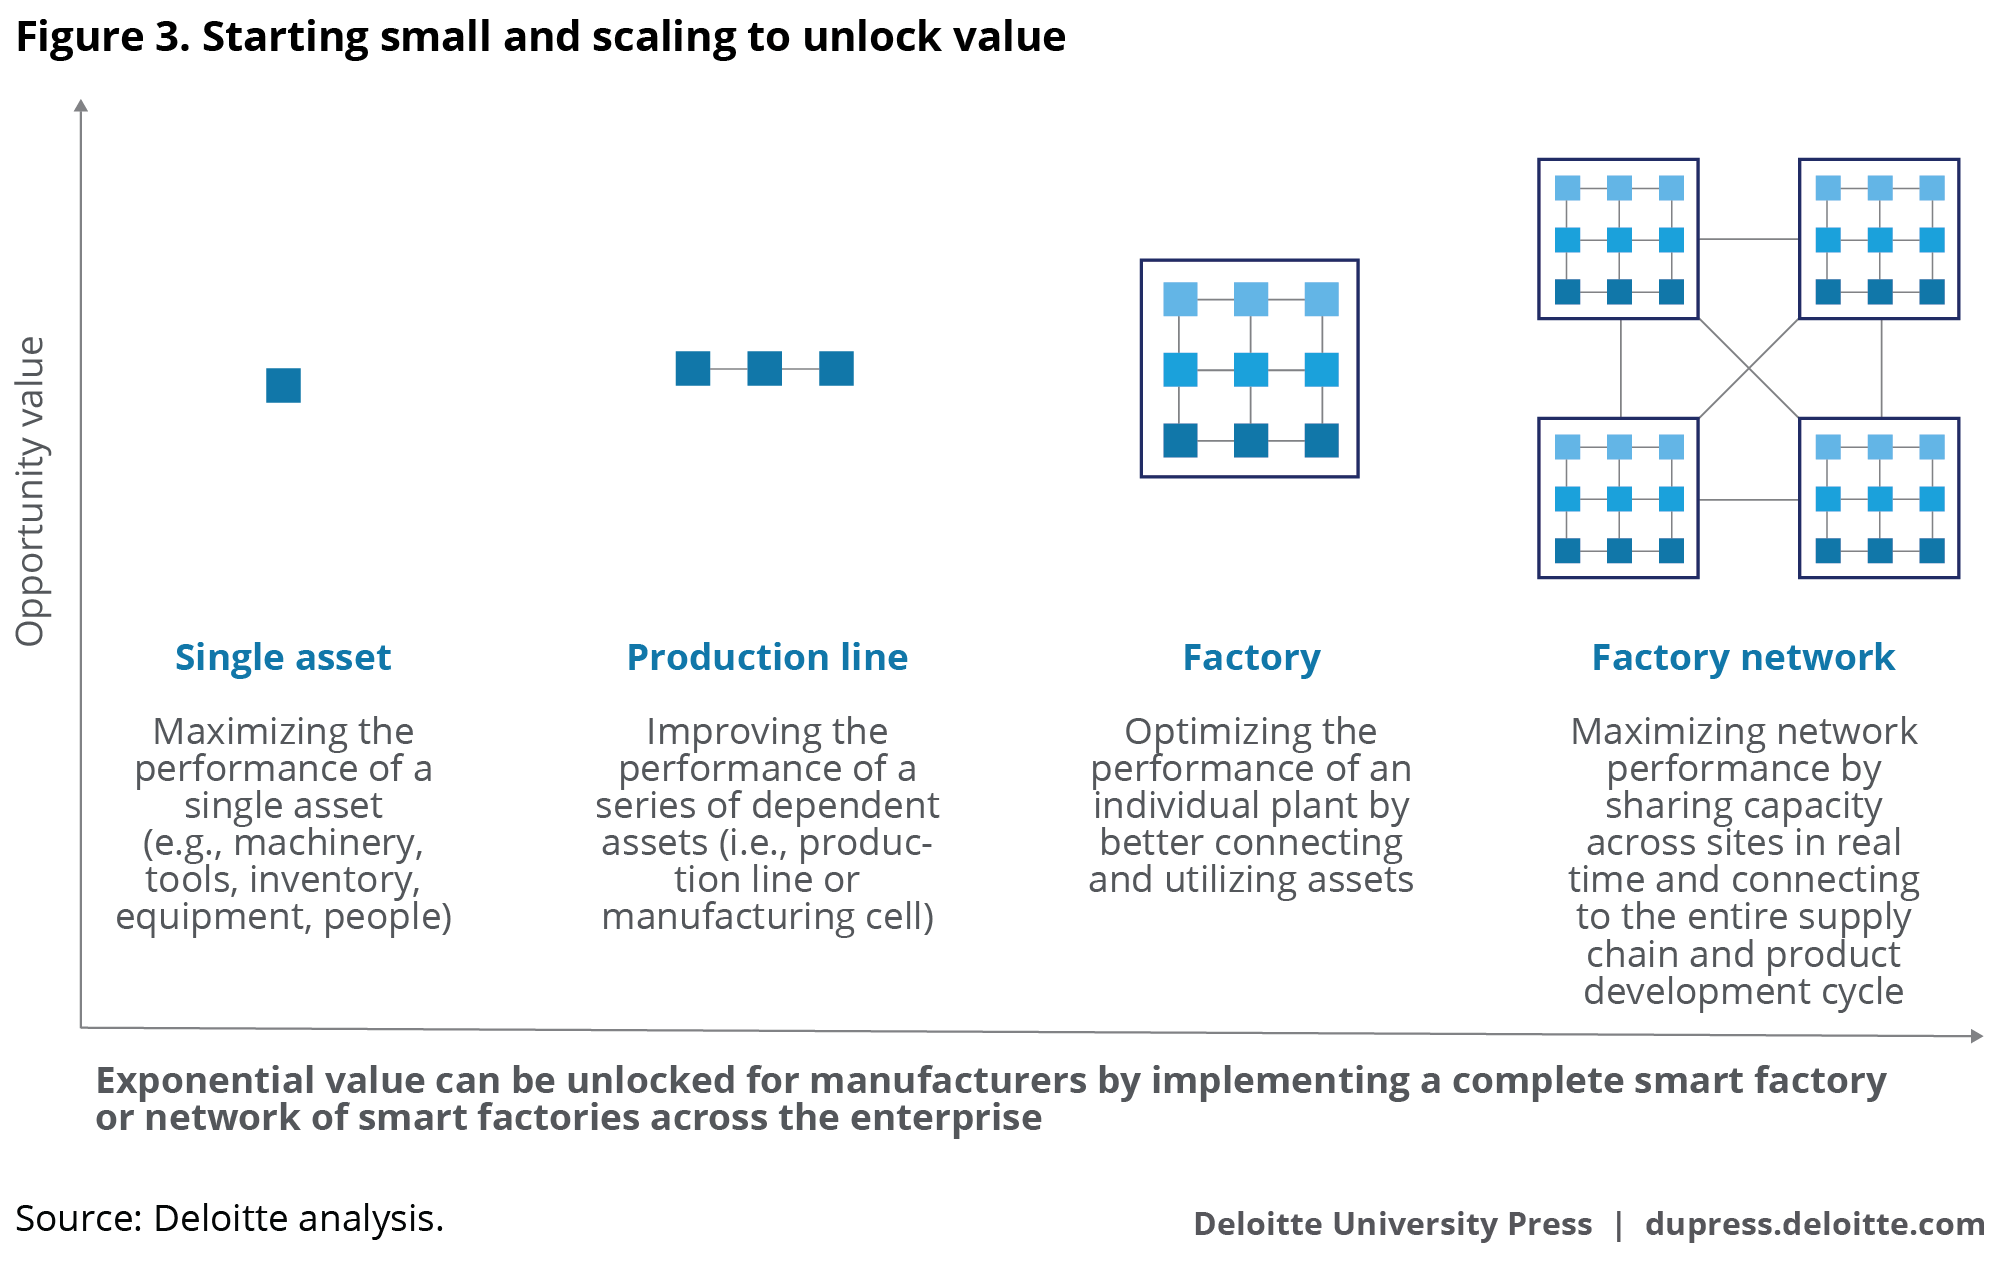 Technology Management Image: Industry 4.0, Smart Factory, And Connected Manufacturing